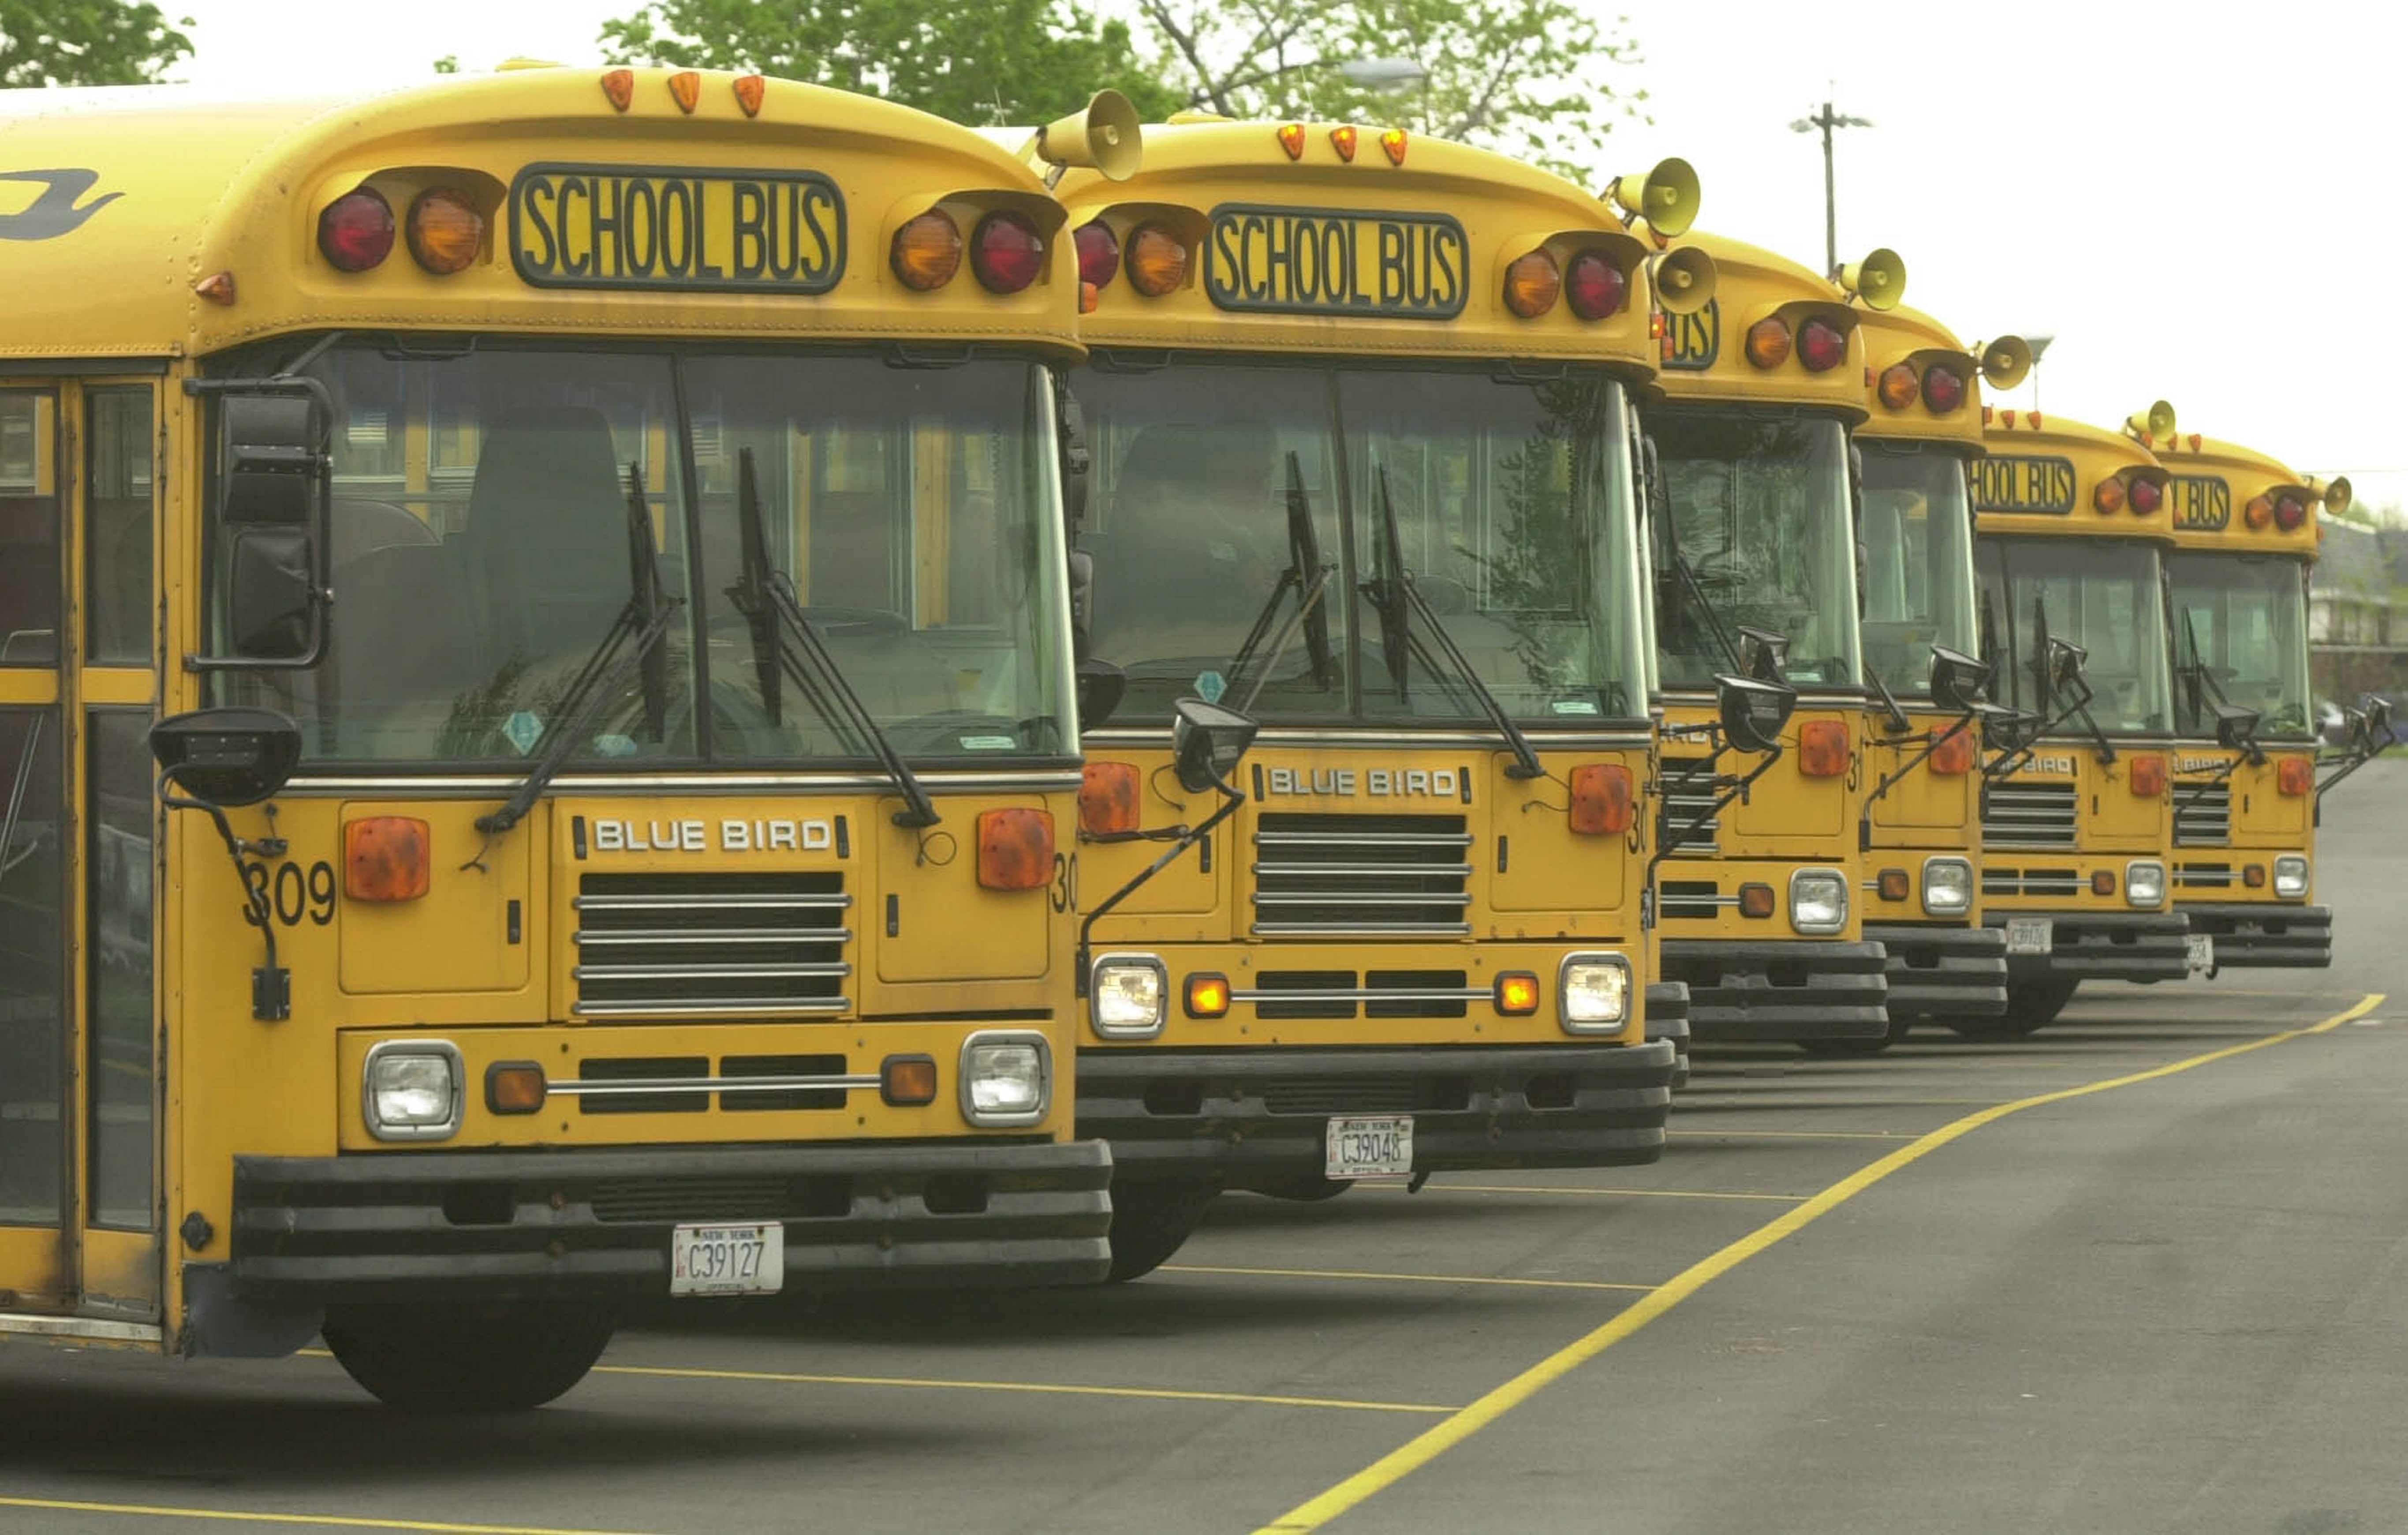 Without significantly more money, school officials warn that districts can expect layoffs, program cutbacks or deep raids on rainy day funds. (Derek Gee/Buffalo News file photo)